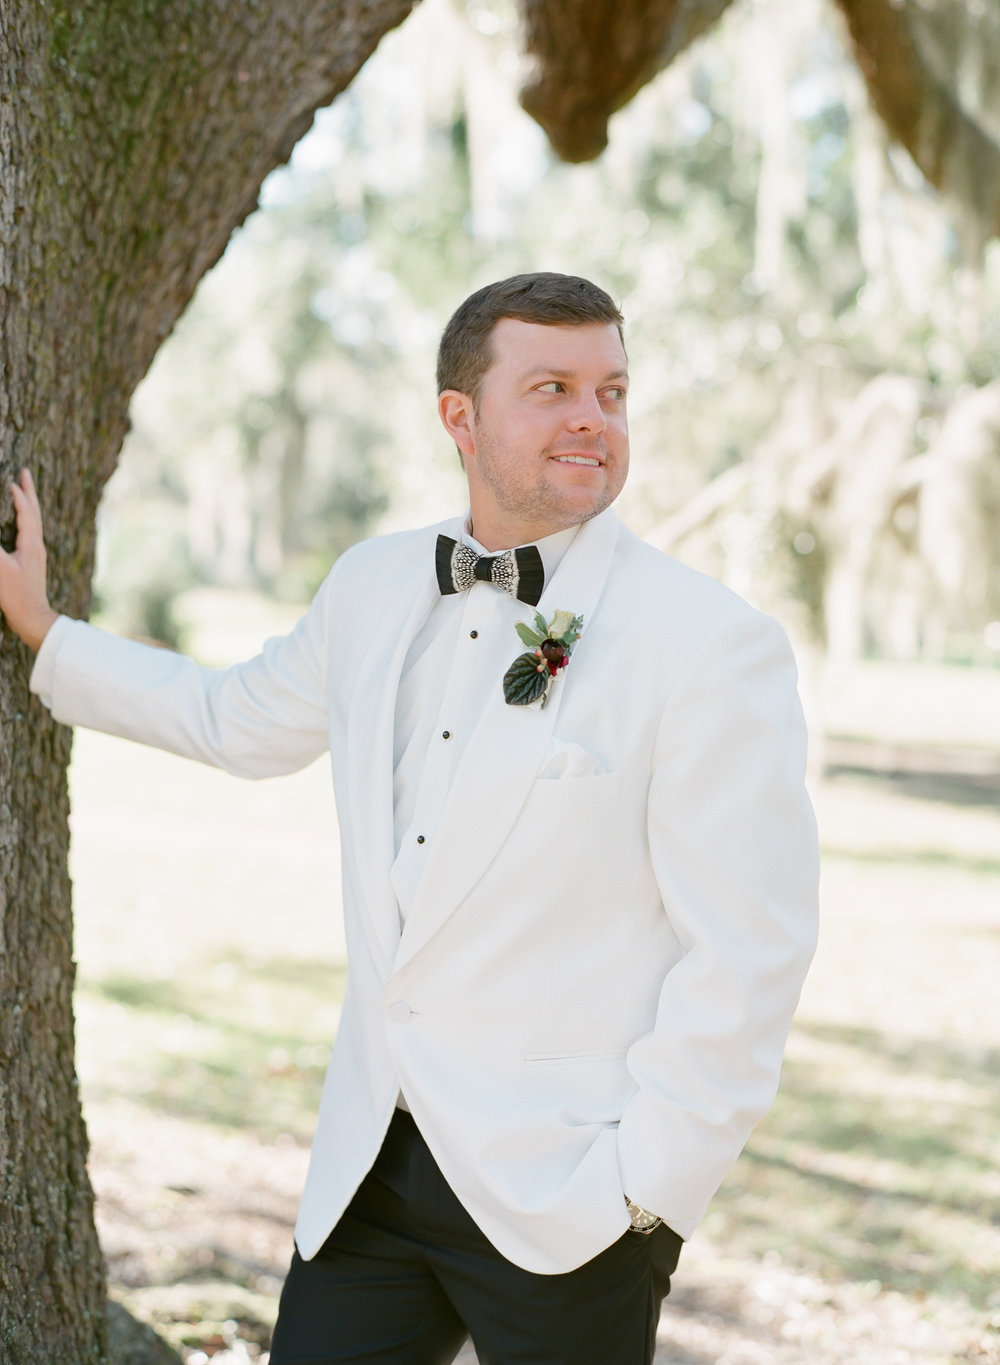 Charleston-Wedding-Photographer-36.jpg